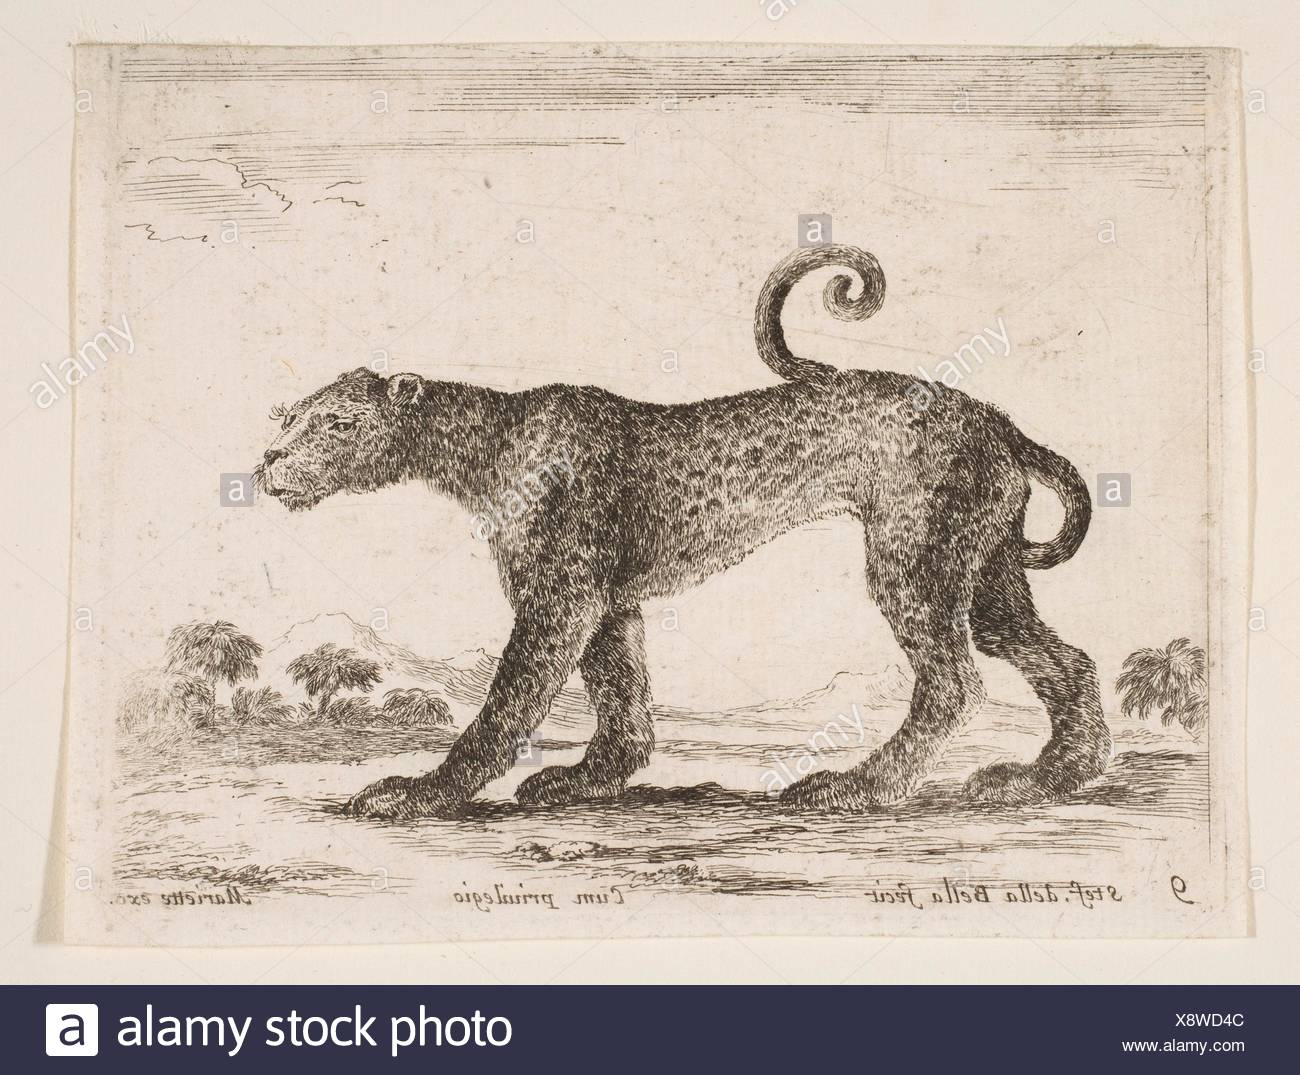 Plate 9: leopard, from 'Various animals' (Diversi animali). Series/Portfolio: 'Various animals' (Diversi animali); Artist: Stefano della Bella - Stock Image